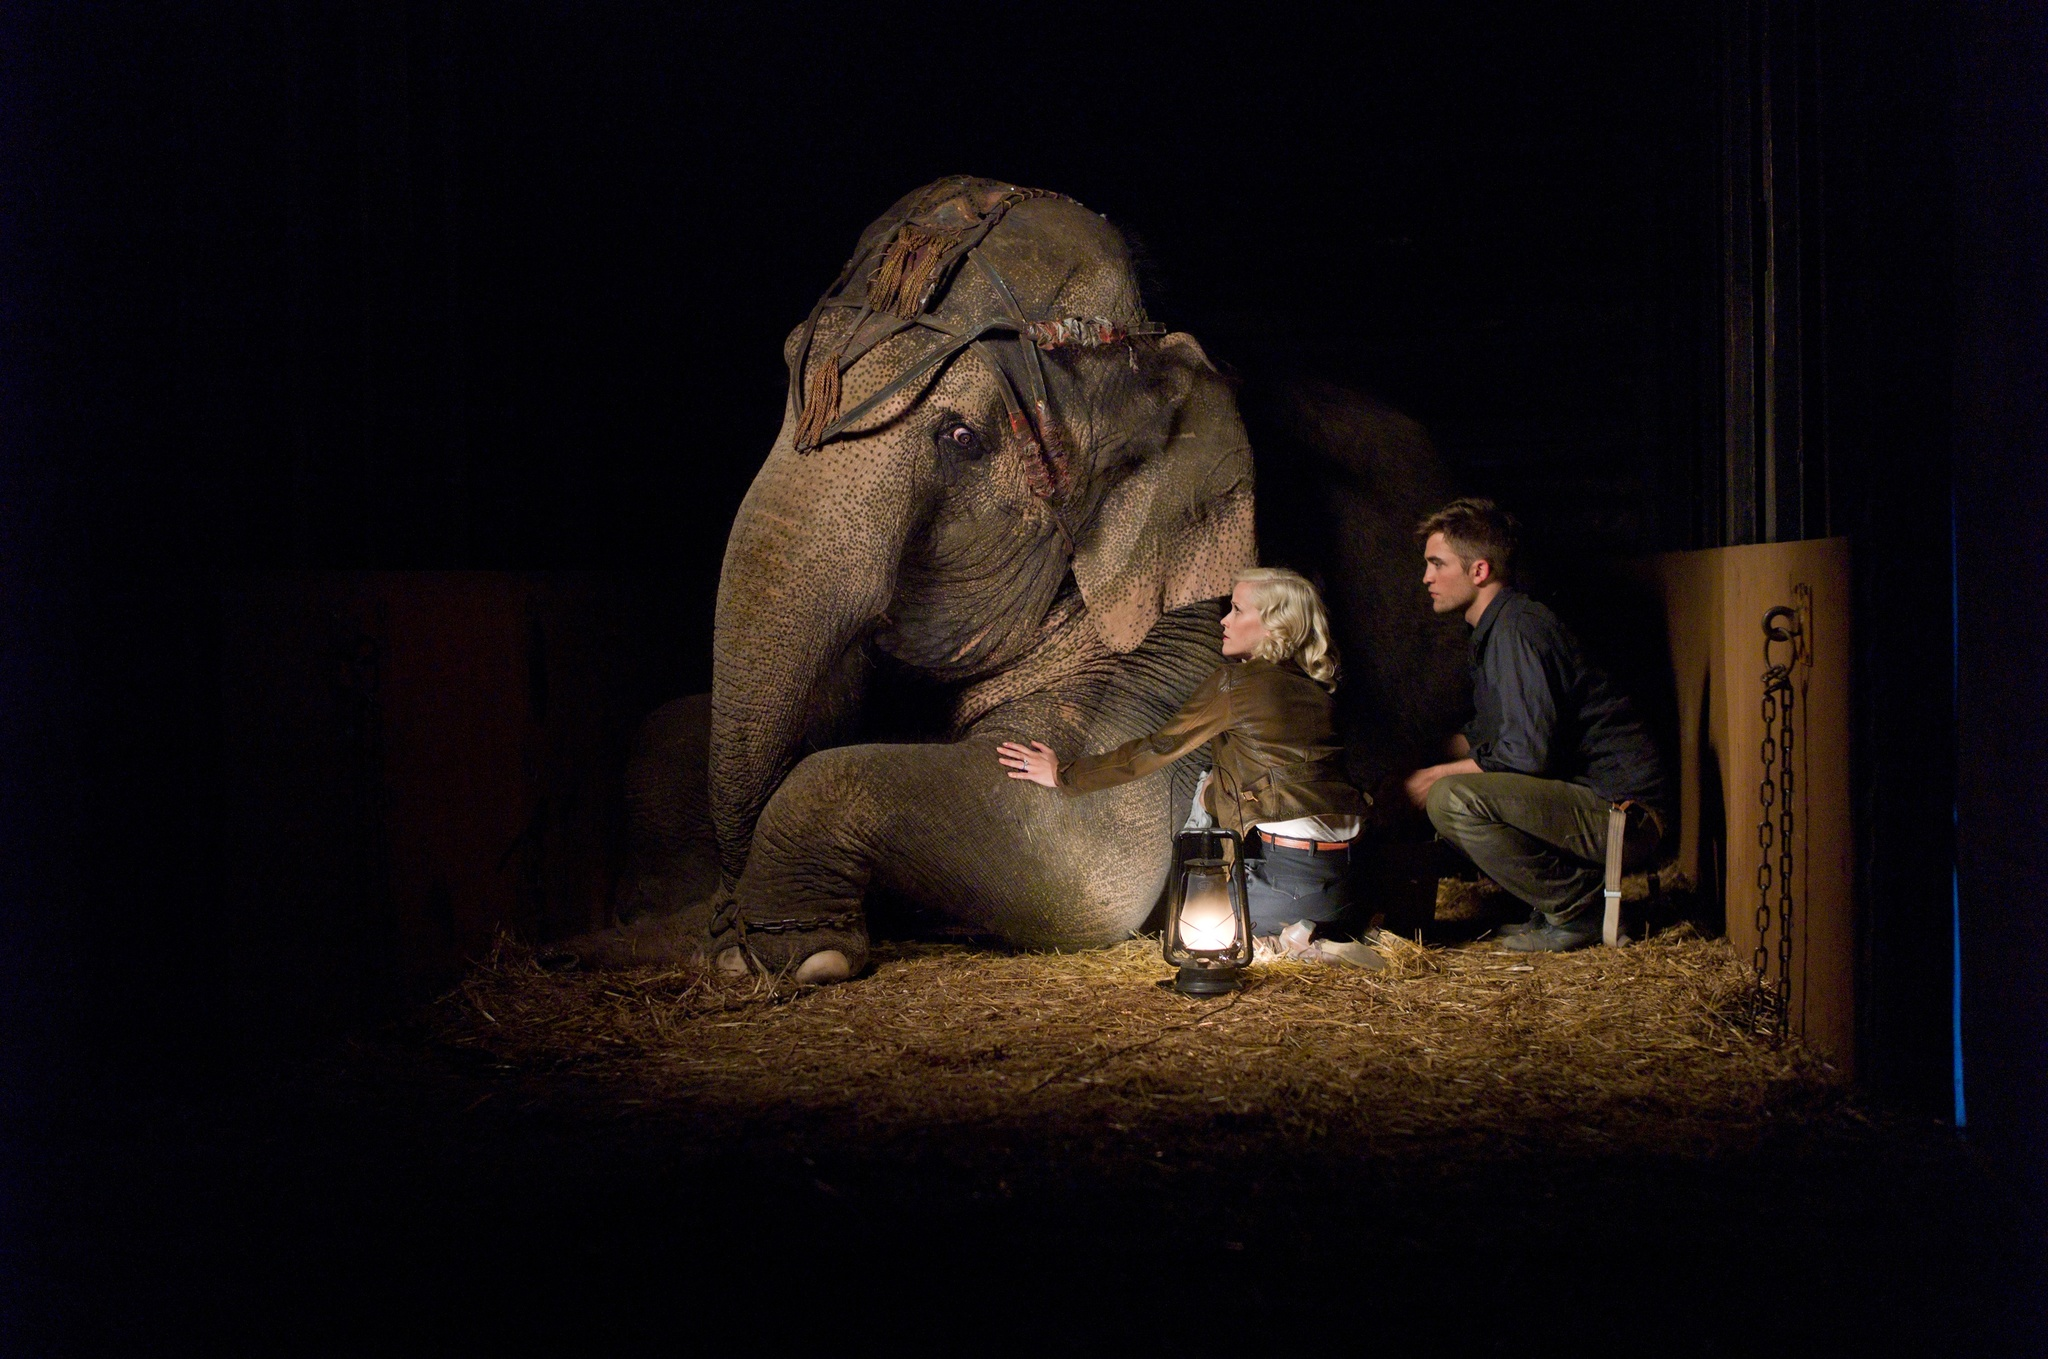 Reese Witherspoon, Robert Pattinson, and Tai in Water for Elephants (2011)